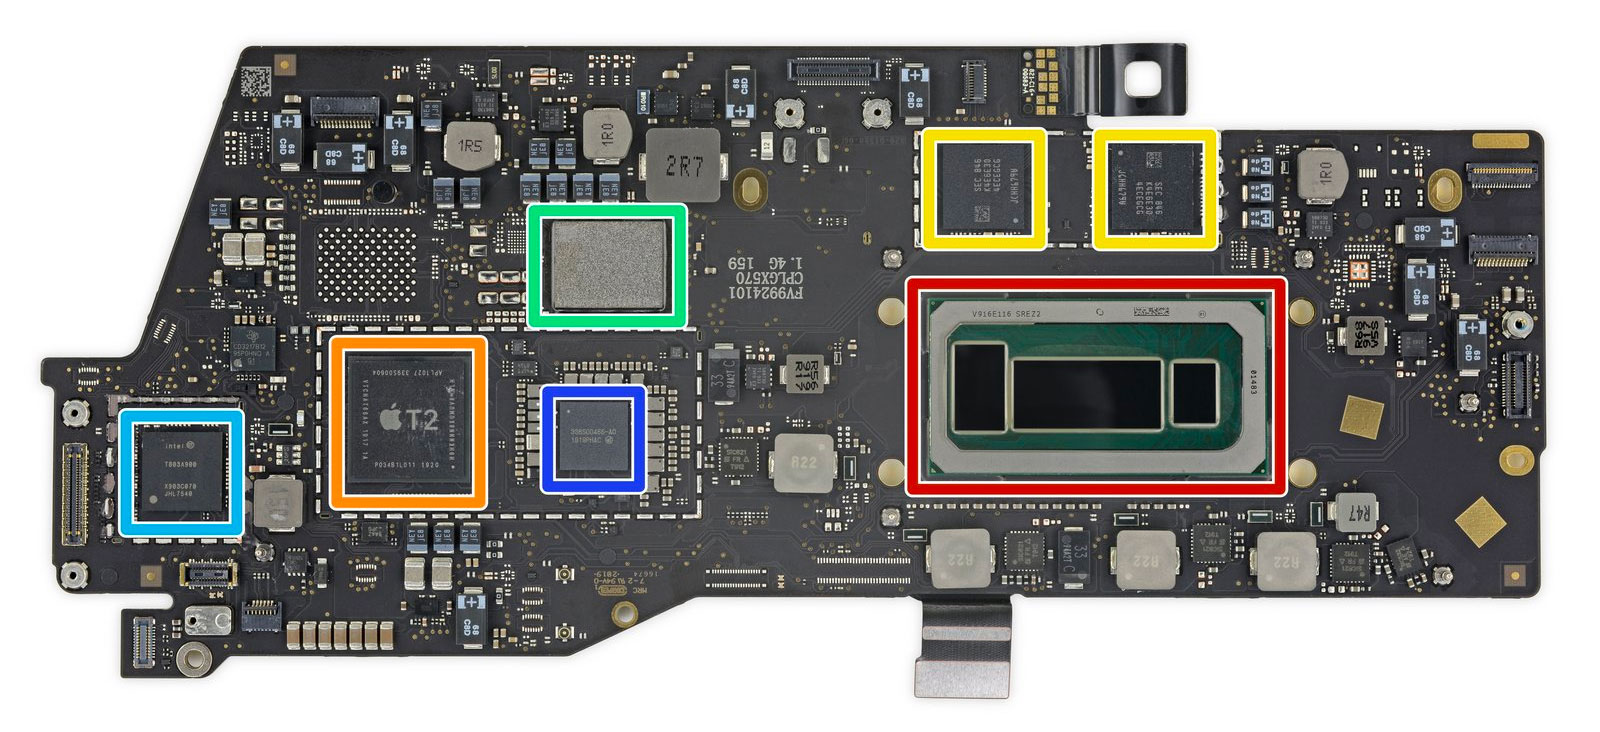 Placa base MacBook Pro de 13 pulgadas del 2019 por dentro